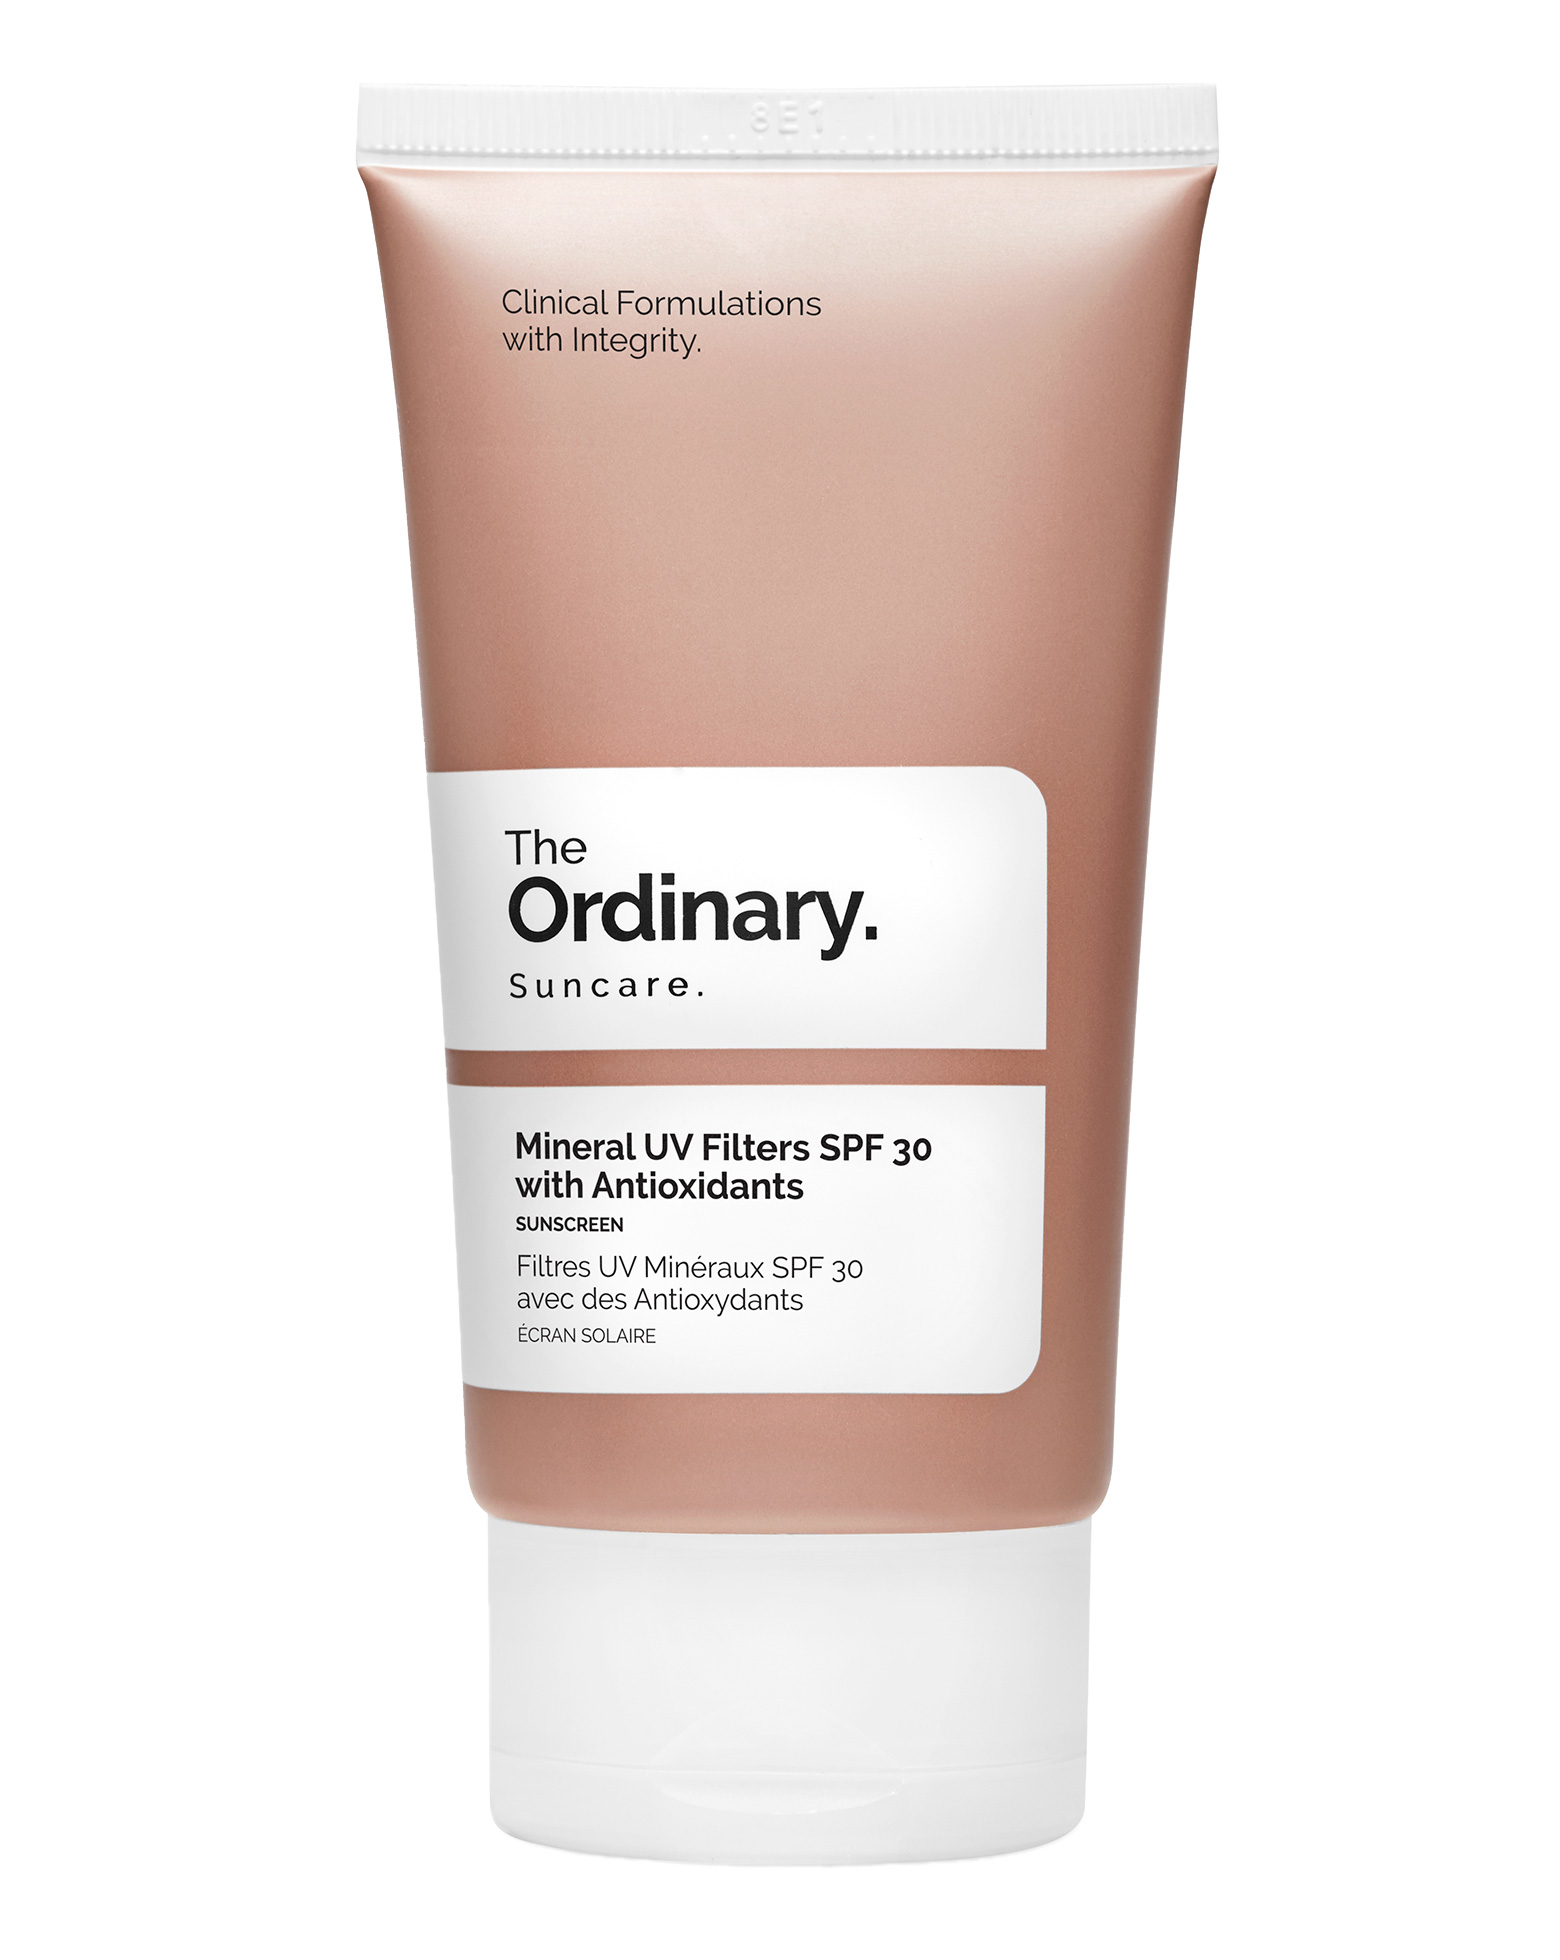 The Ordinary | Mineral UV Filters SPF 30 with Antioxidants | Cult Beauty